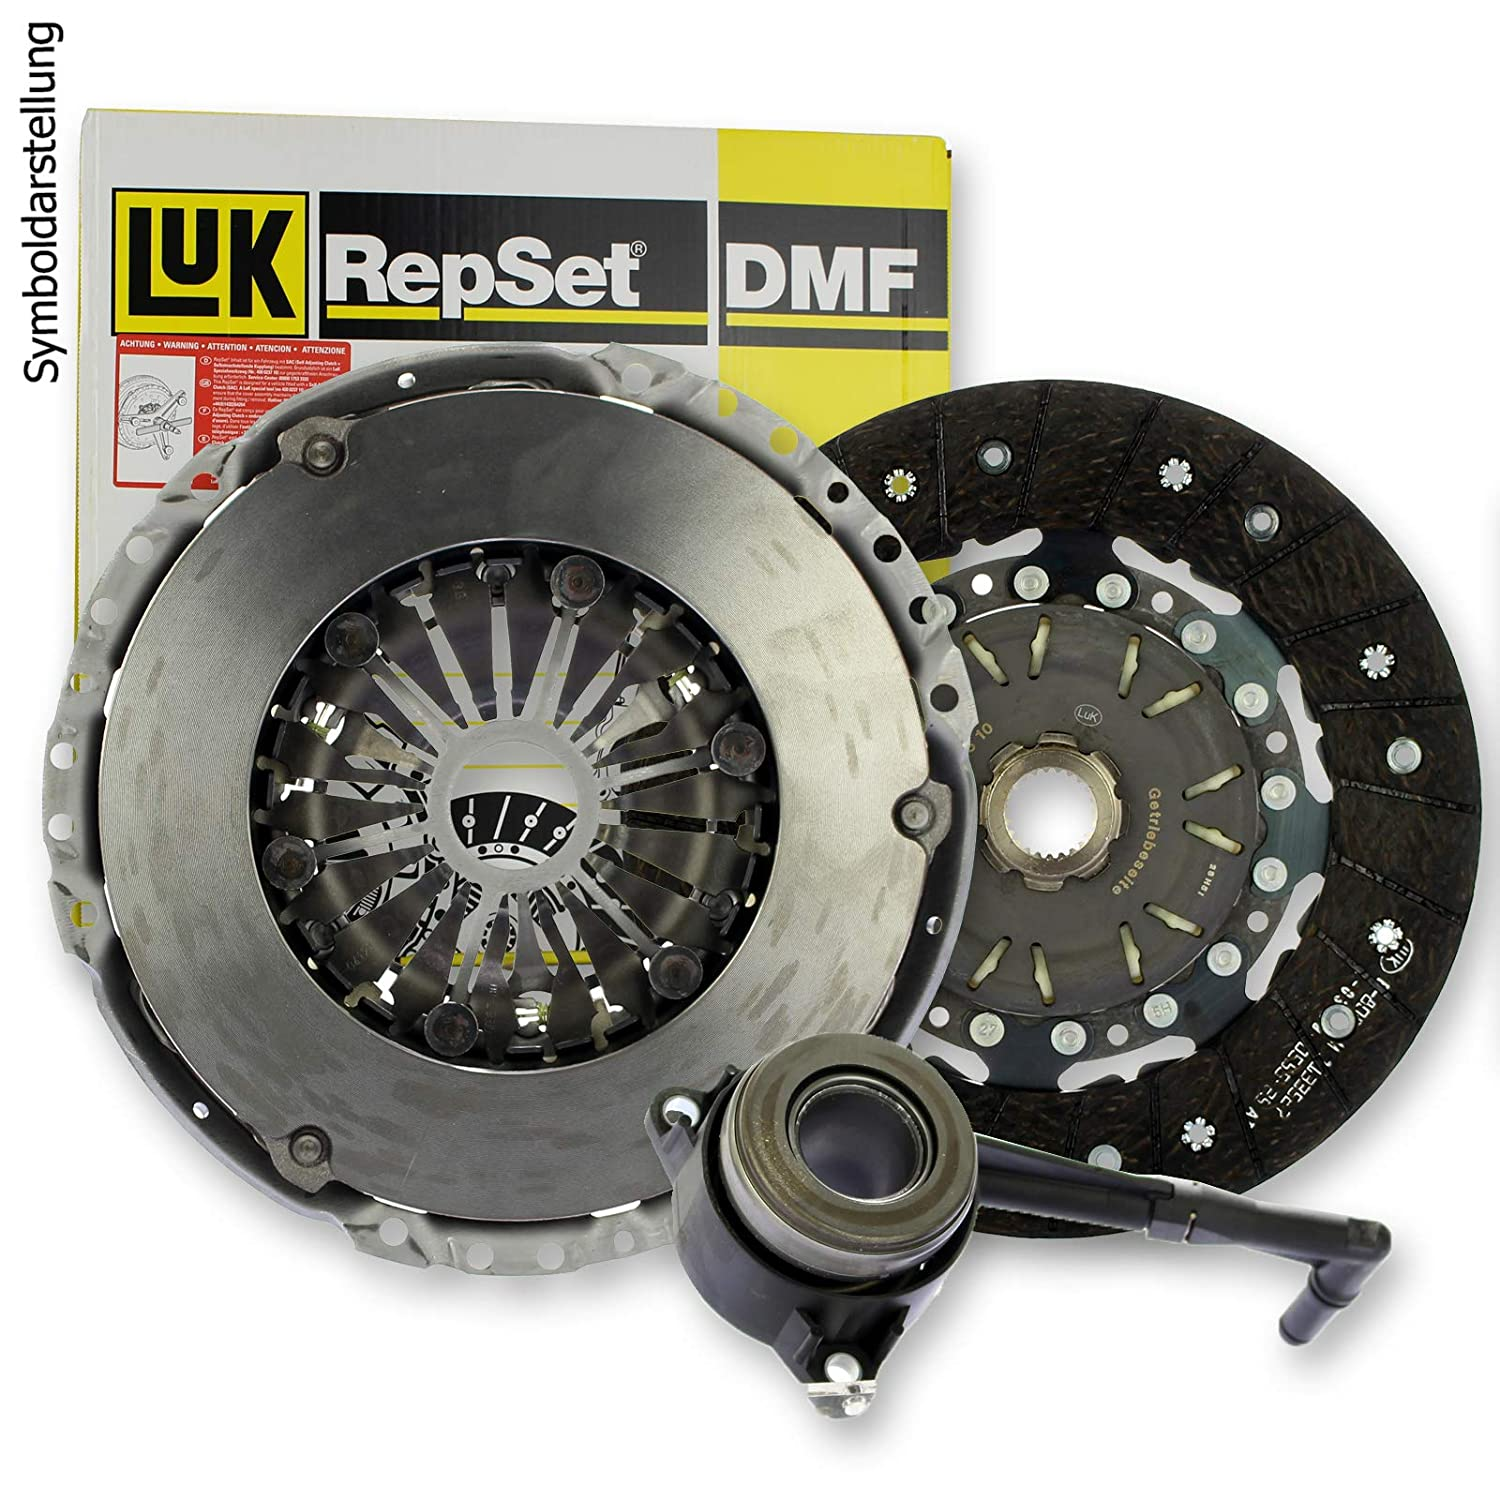 Clutch Set 624 3739 33 Business Industry Science